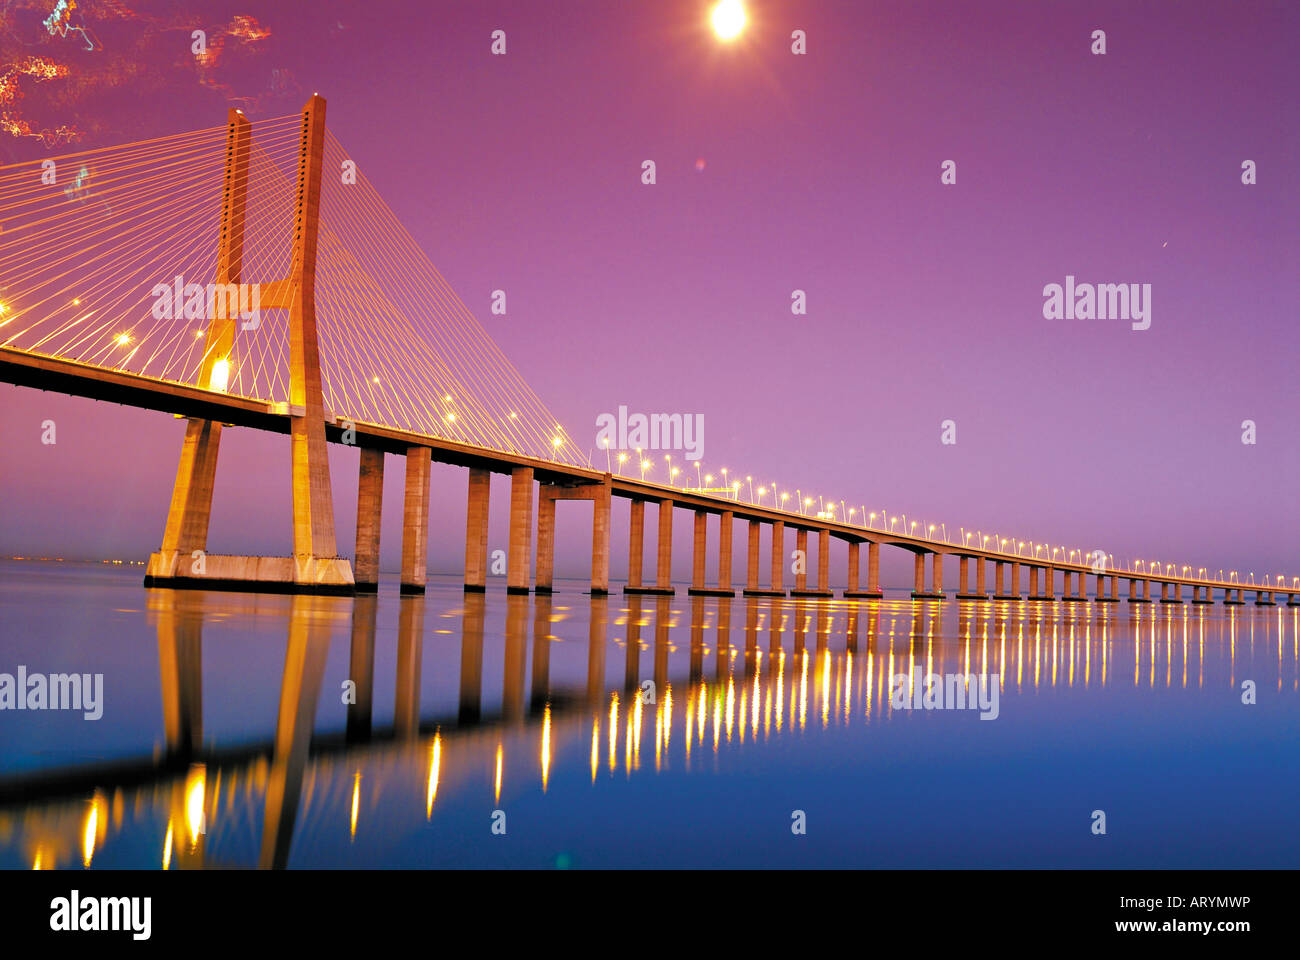 Vasco da Gama bridge by night, Lisbon, Portugal - Stock Image